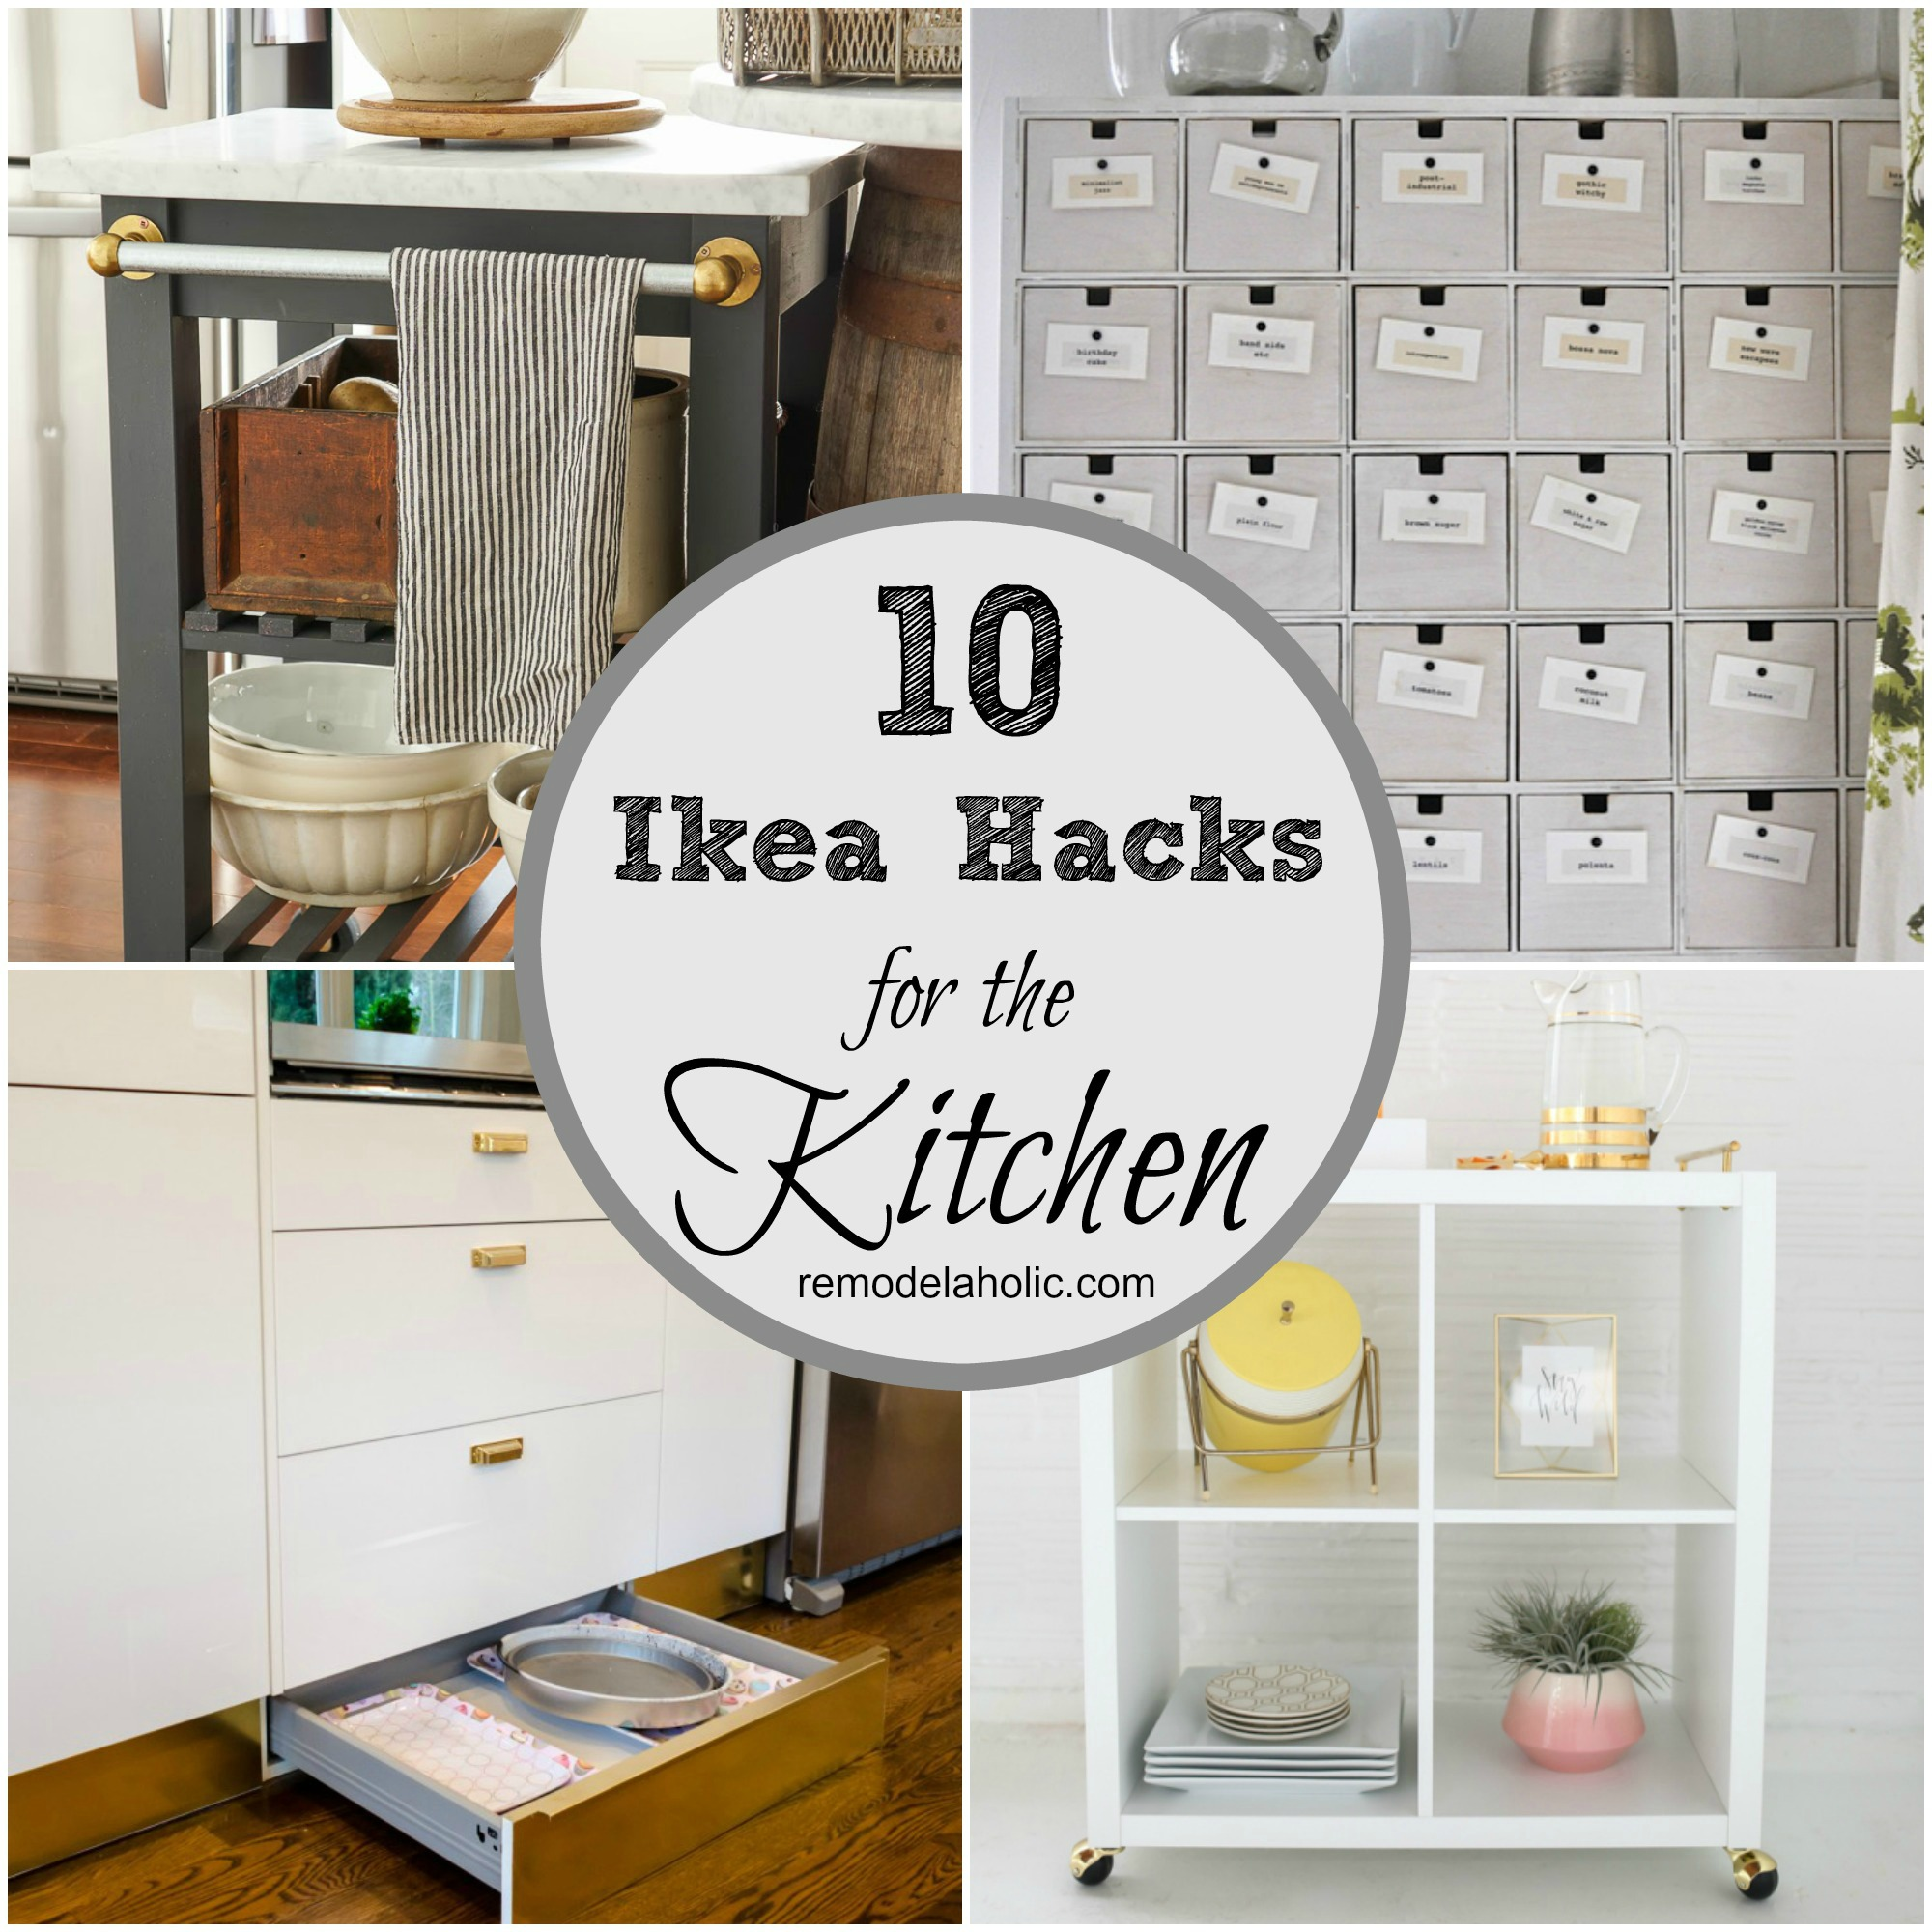 Ikea Hacks Remodelaholic 10 Ingenious Ikea Hacks For The Kitchen